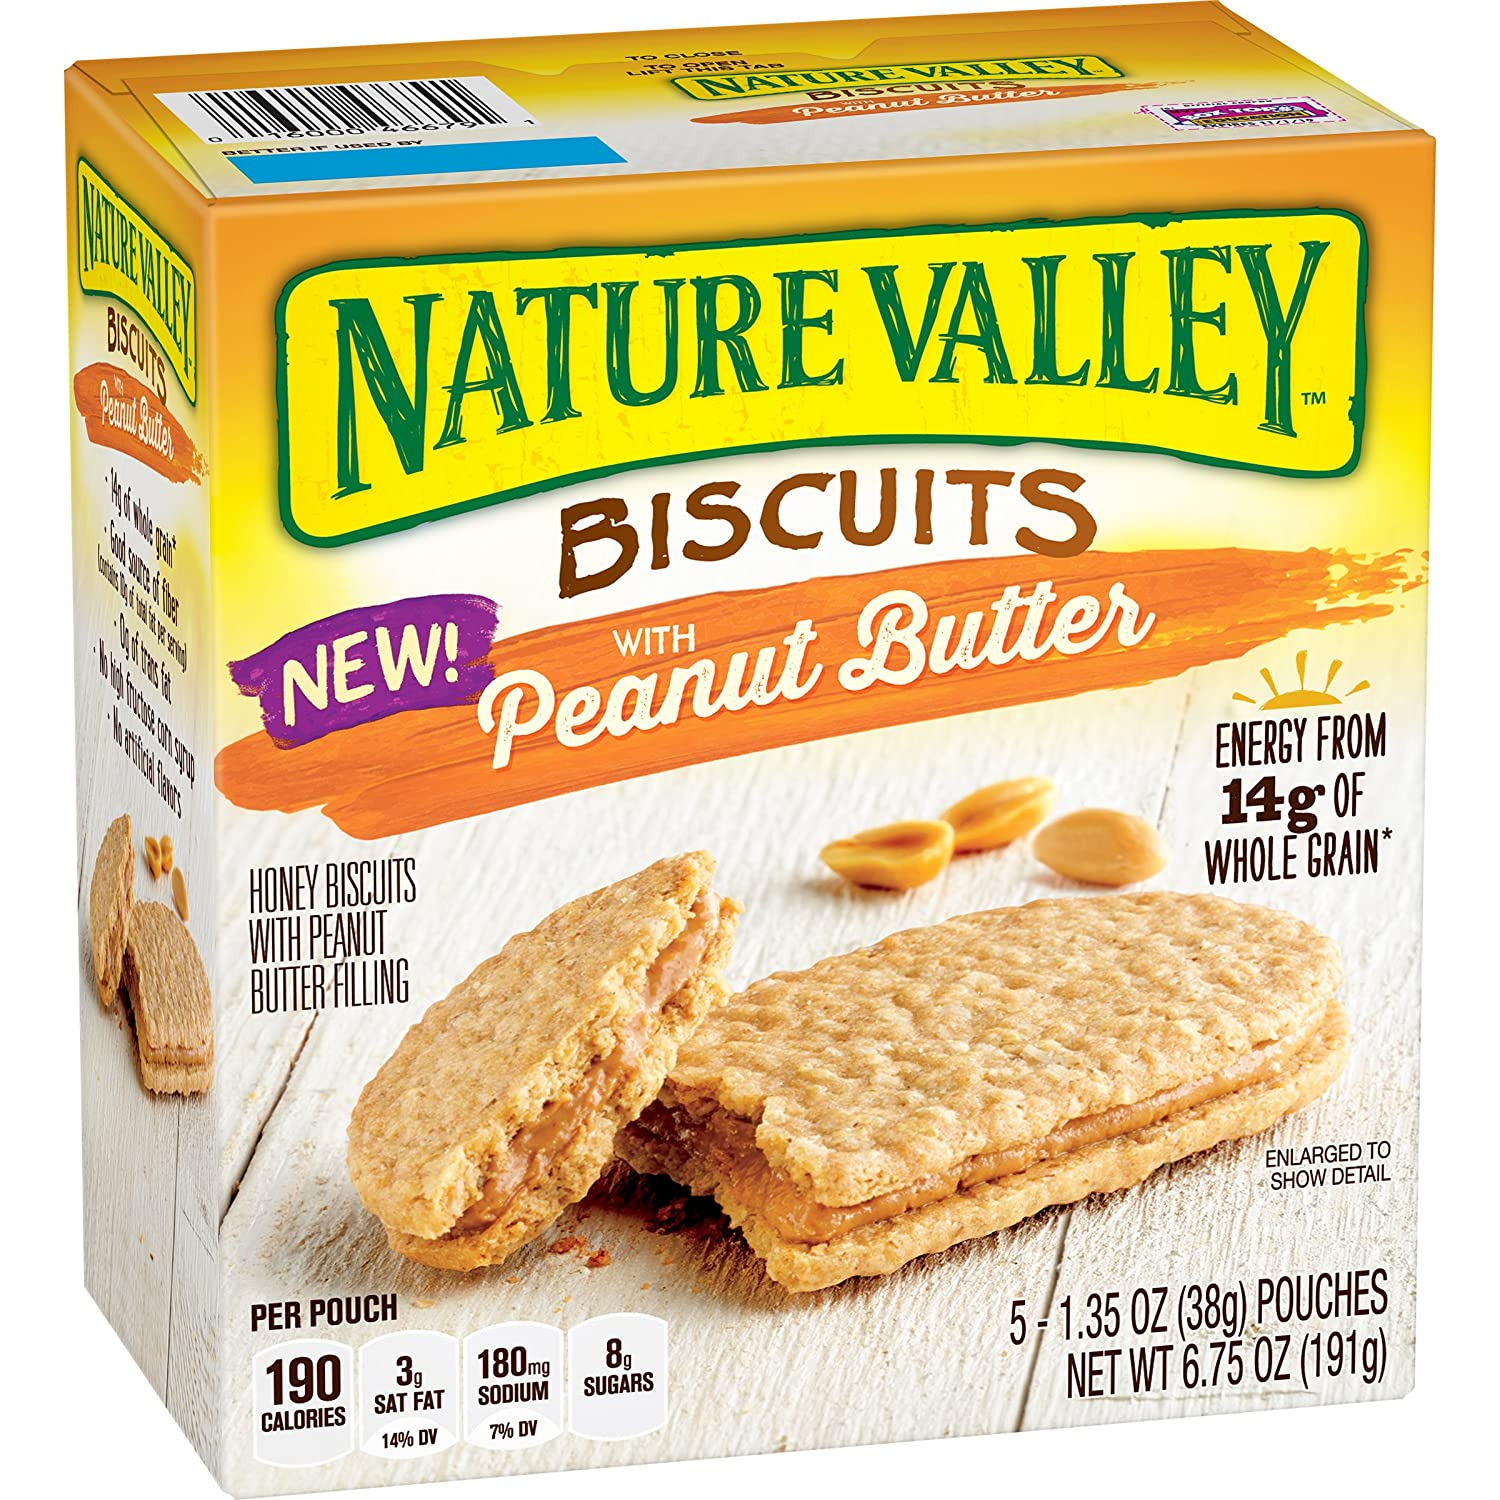 Nature Valley Biscuits, Peanut Butter, 5 Count